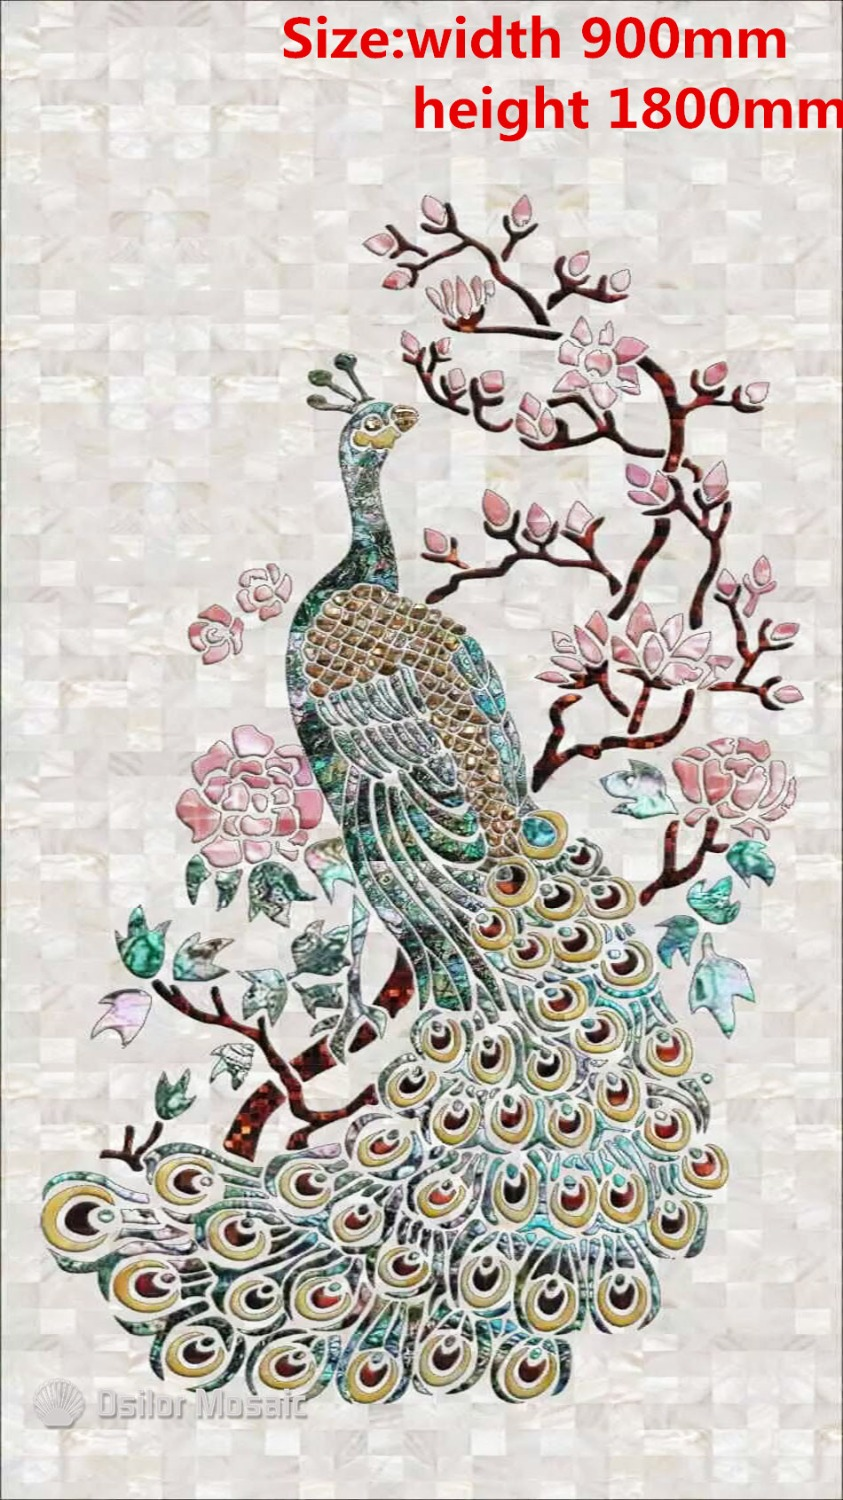 Customized Handmade Mosaic Art Mother Of Pearl Mosaic Tile Art Murals For Interior House Decoration Peacock Pattern